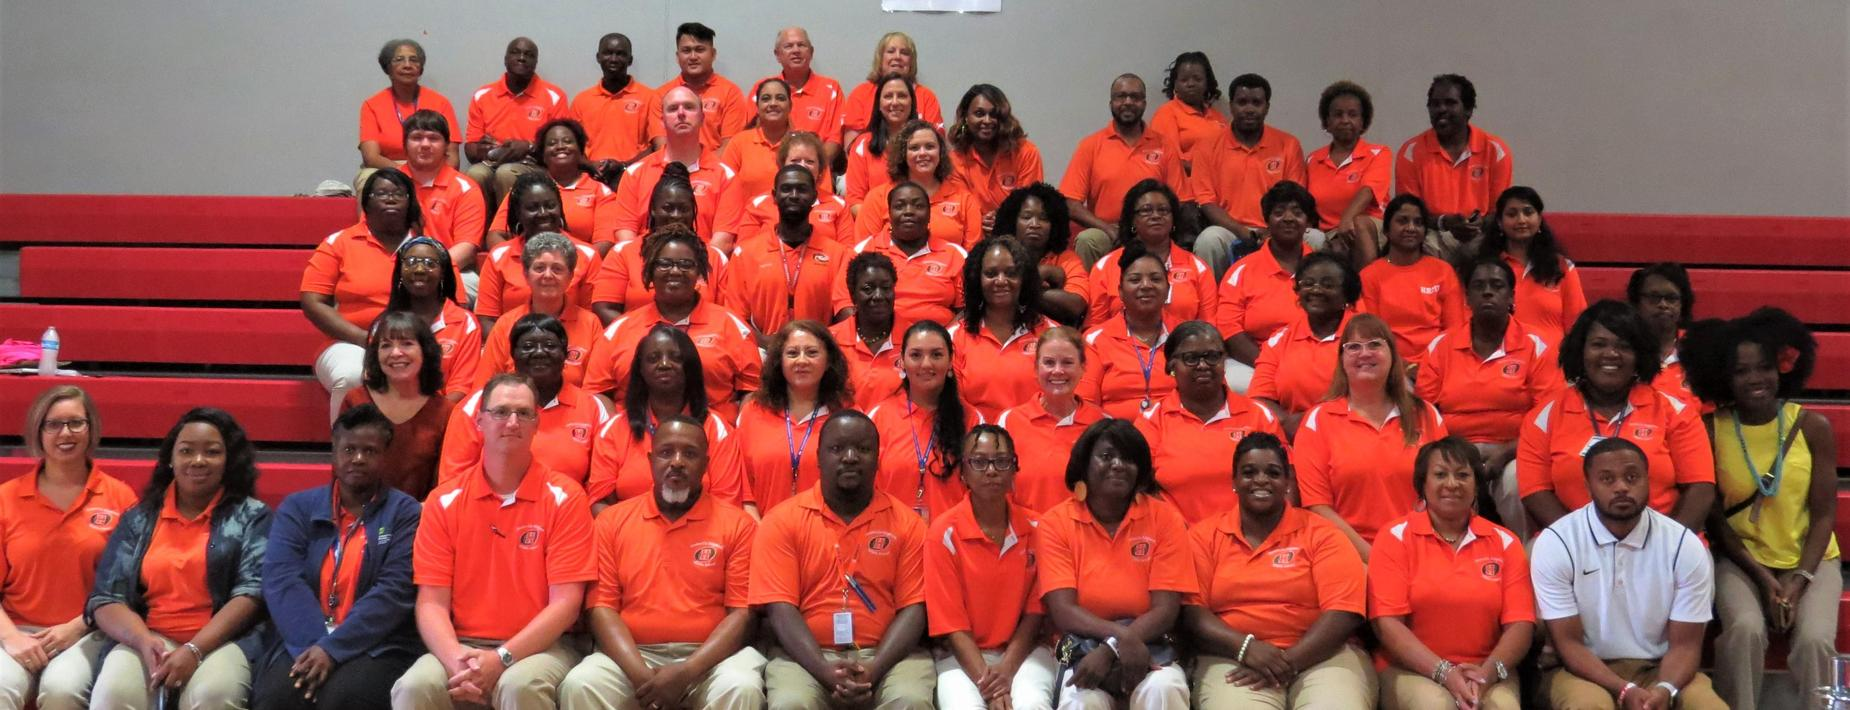 Hardeeville-Ridgeland Middle Staff Photo